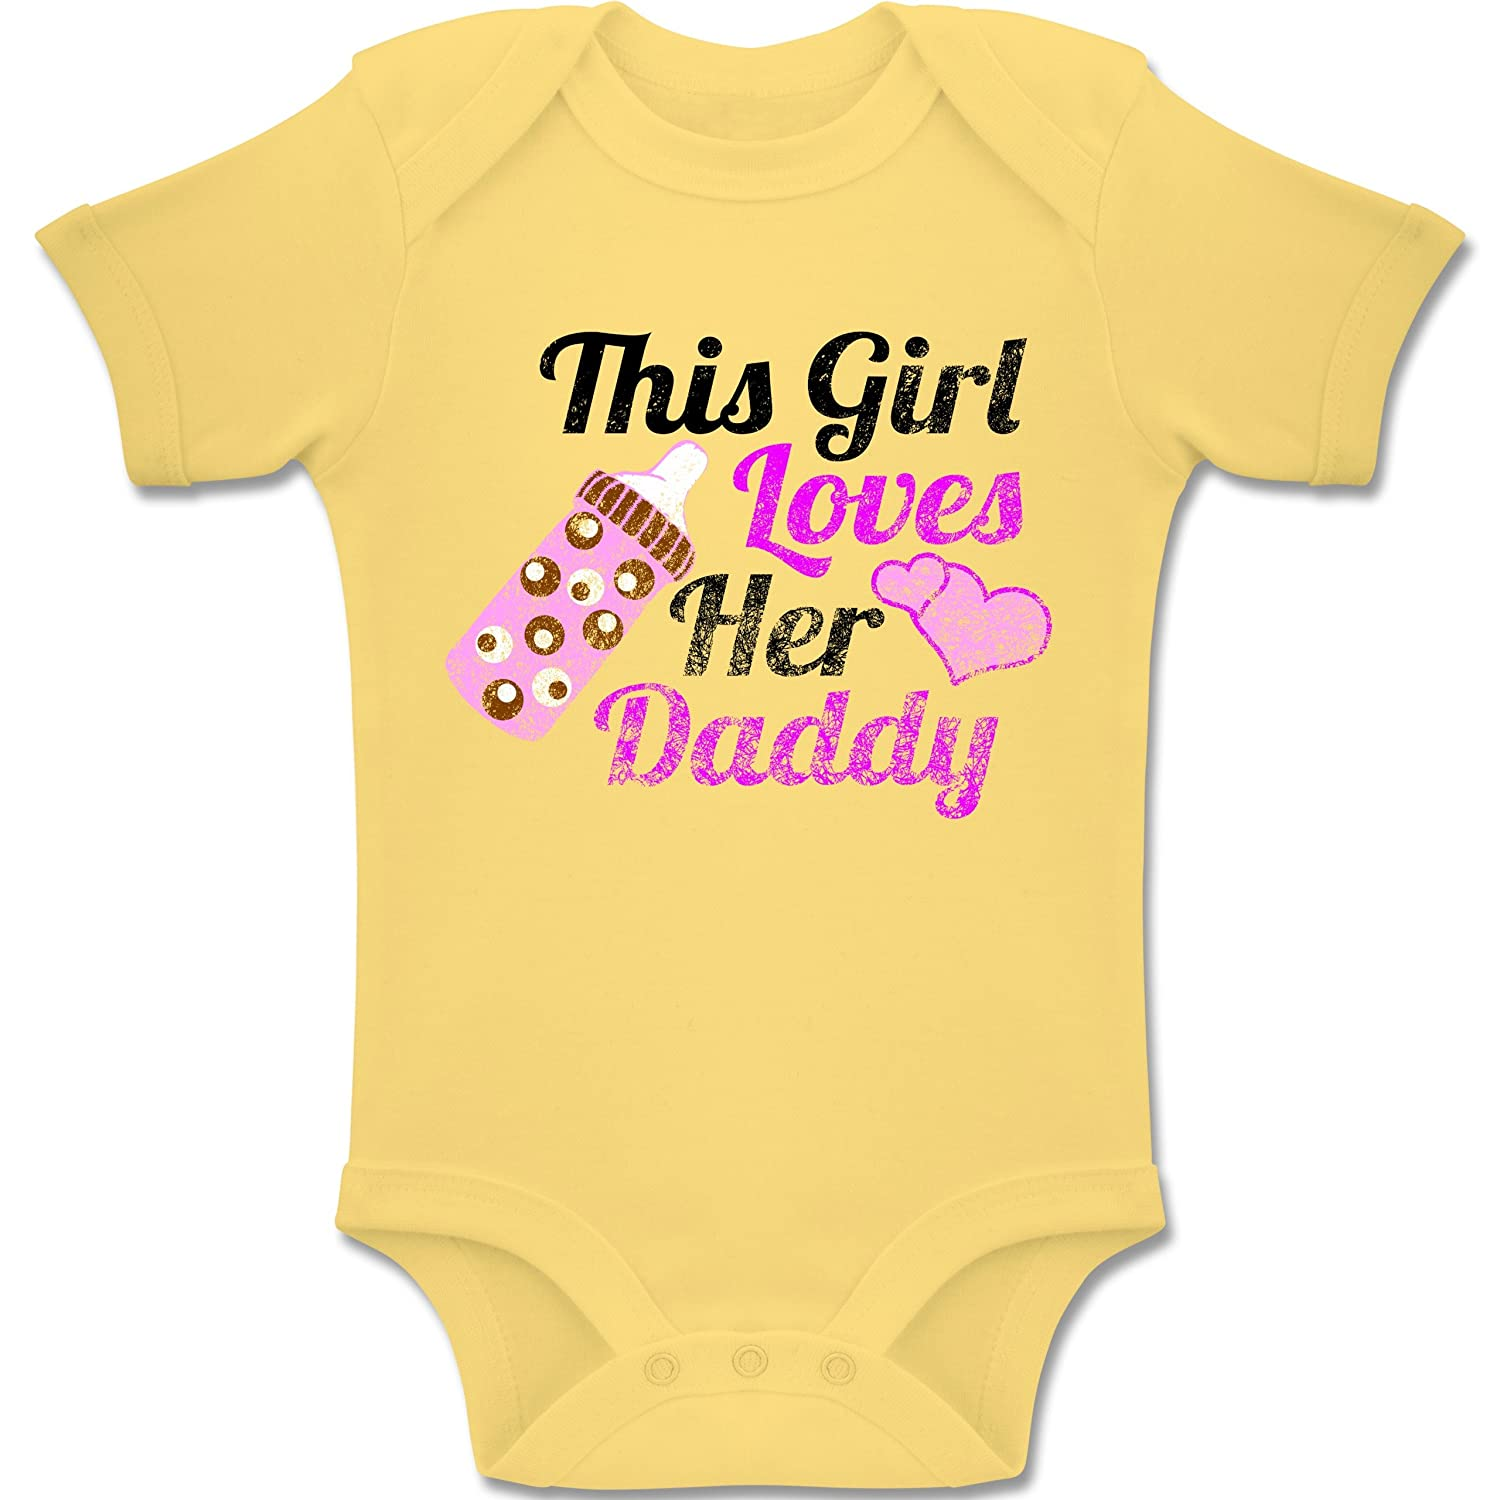 Vintage Look Baby Kurzarm Body Strampler This Girl Loves her Daddy Baby